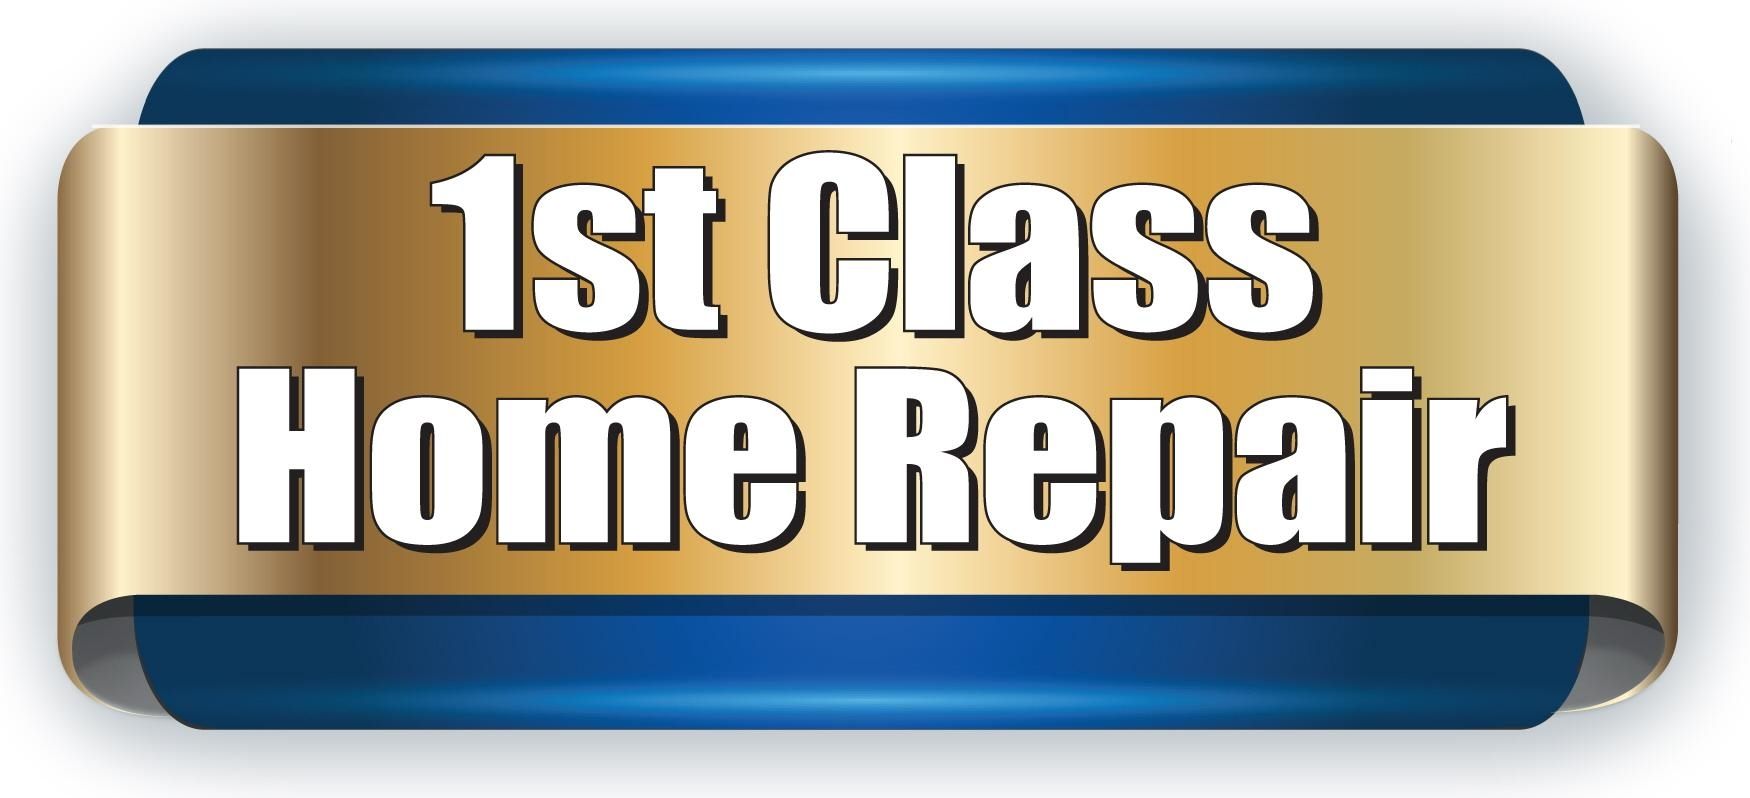 First Class Home Repair, LLC - Salt Lake City, UT 84109 - (801)810-7024 | ShowMeLocal.com